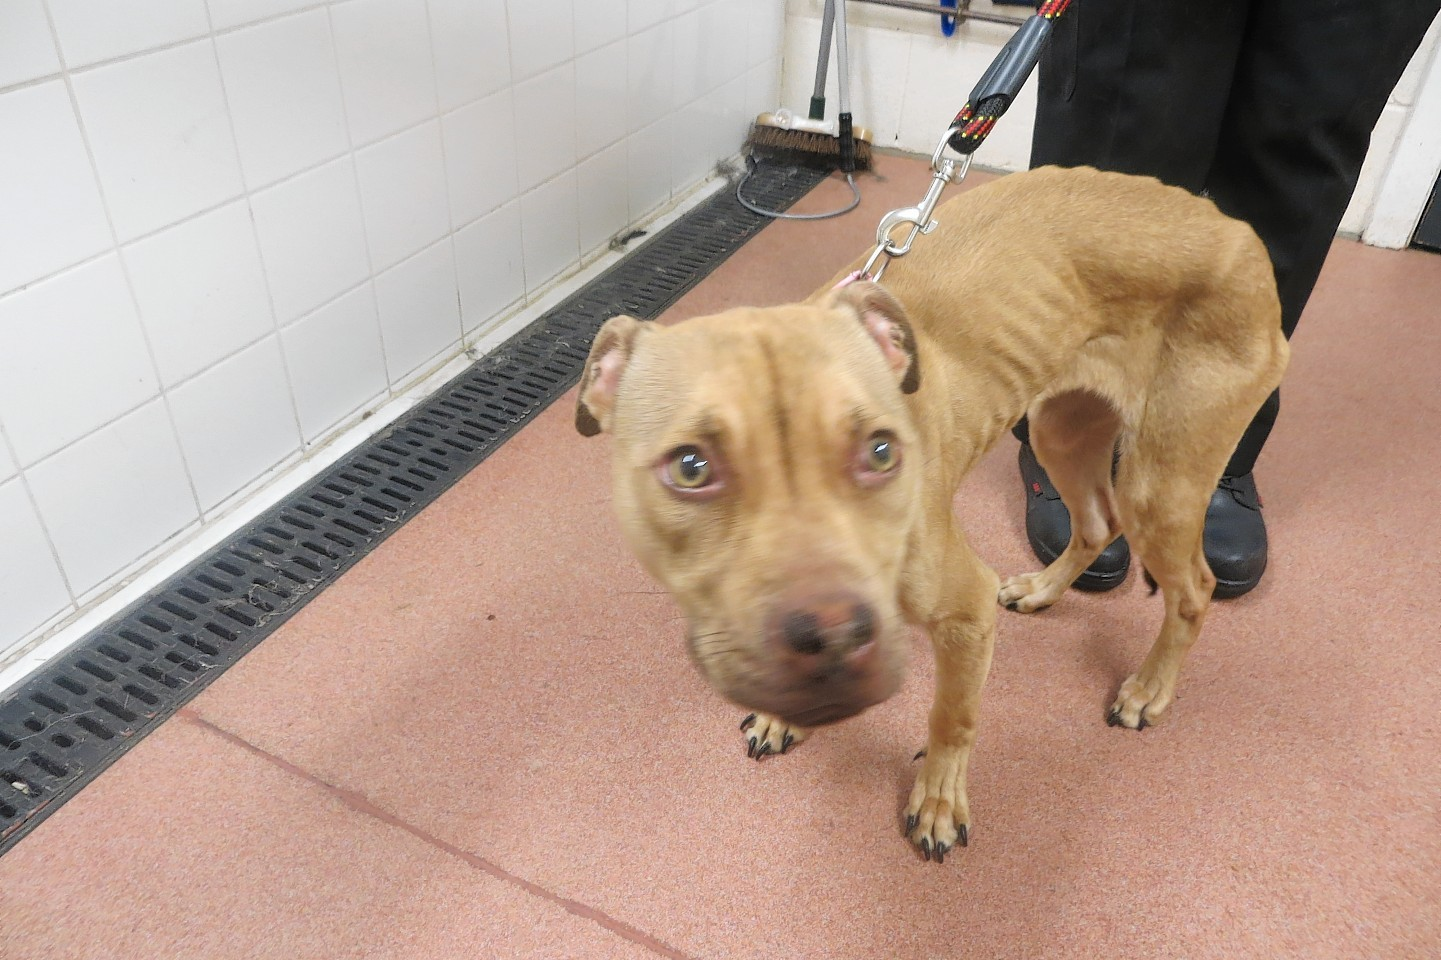 One of the starved dogs kept by Shona McBain